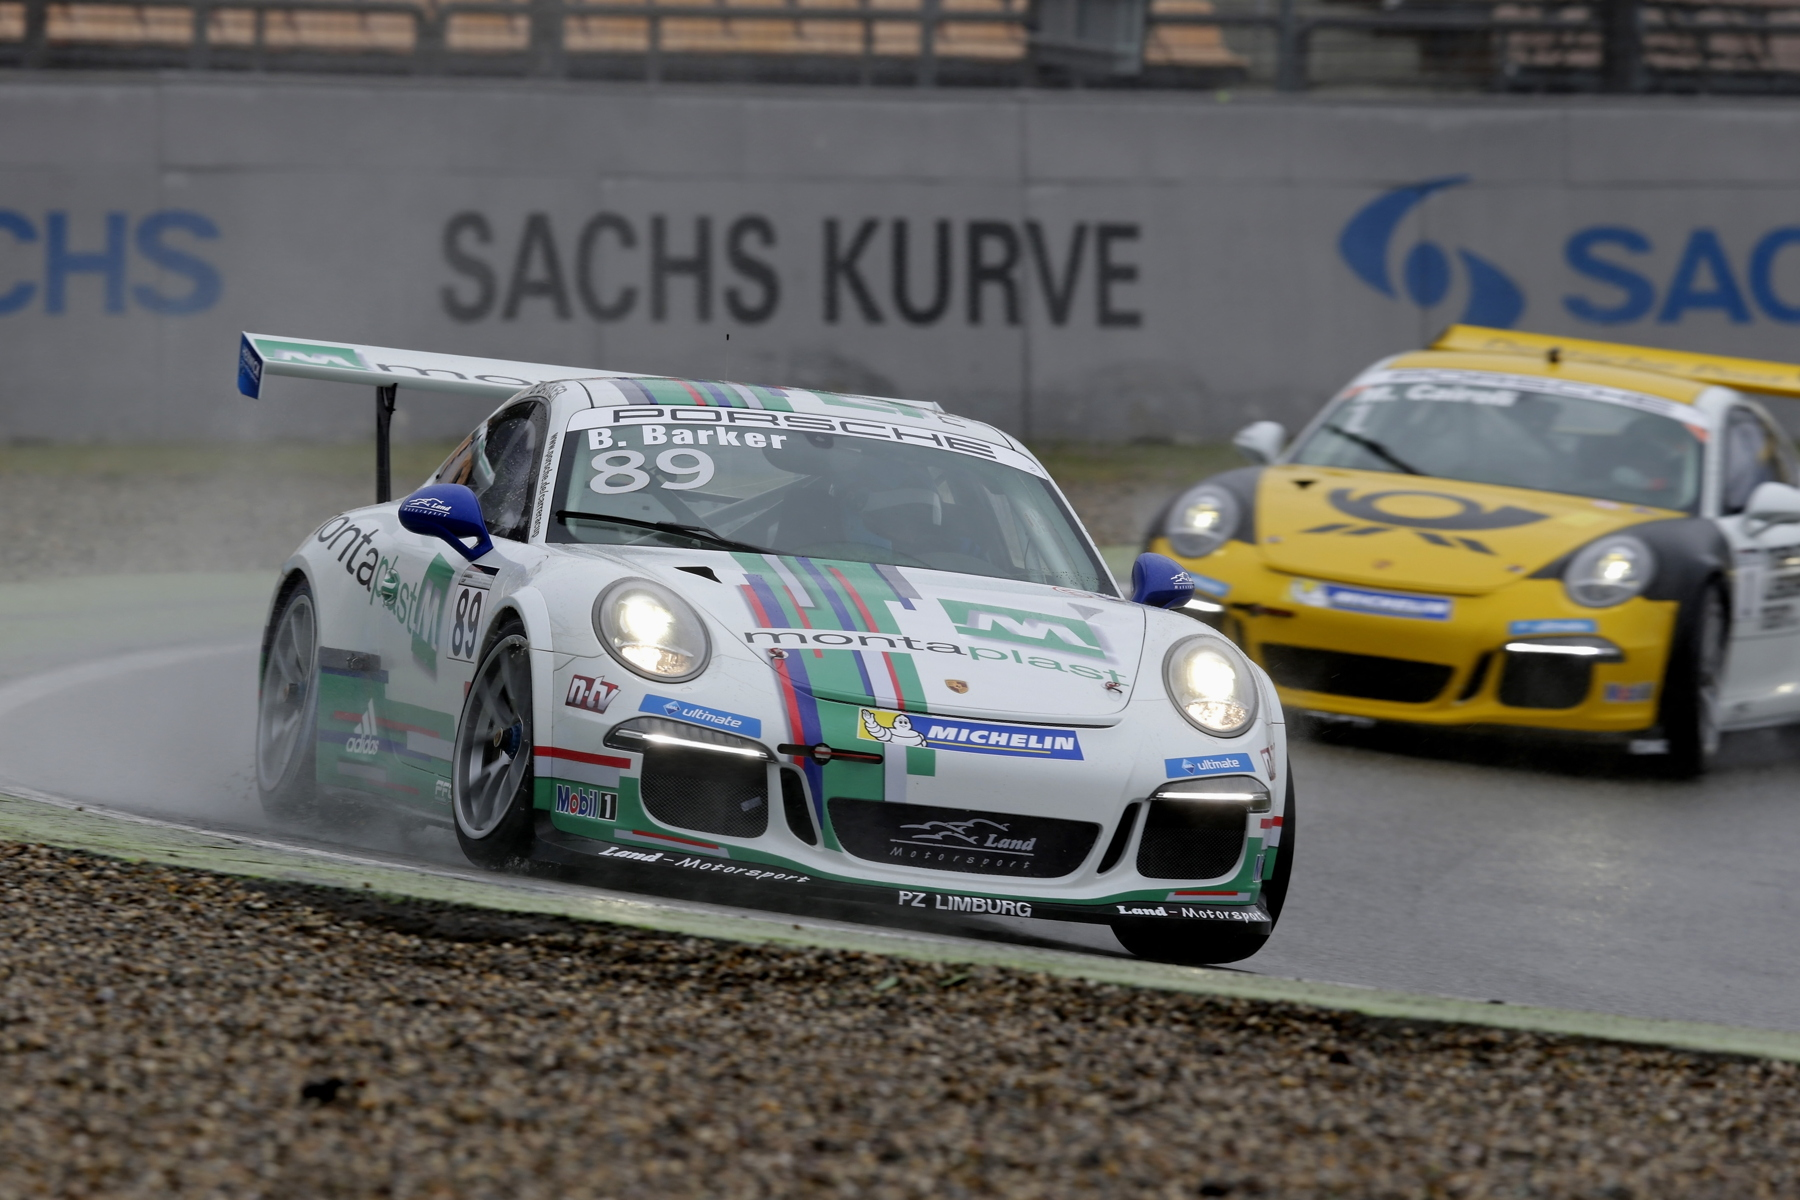 After a good start in the Carrera Cup Deutschland, Ben Barker will be hoping to challenge for his first Supercup victory this weekend.